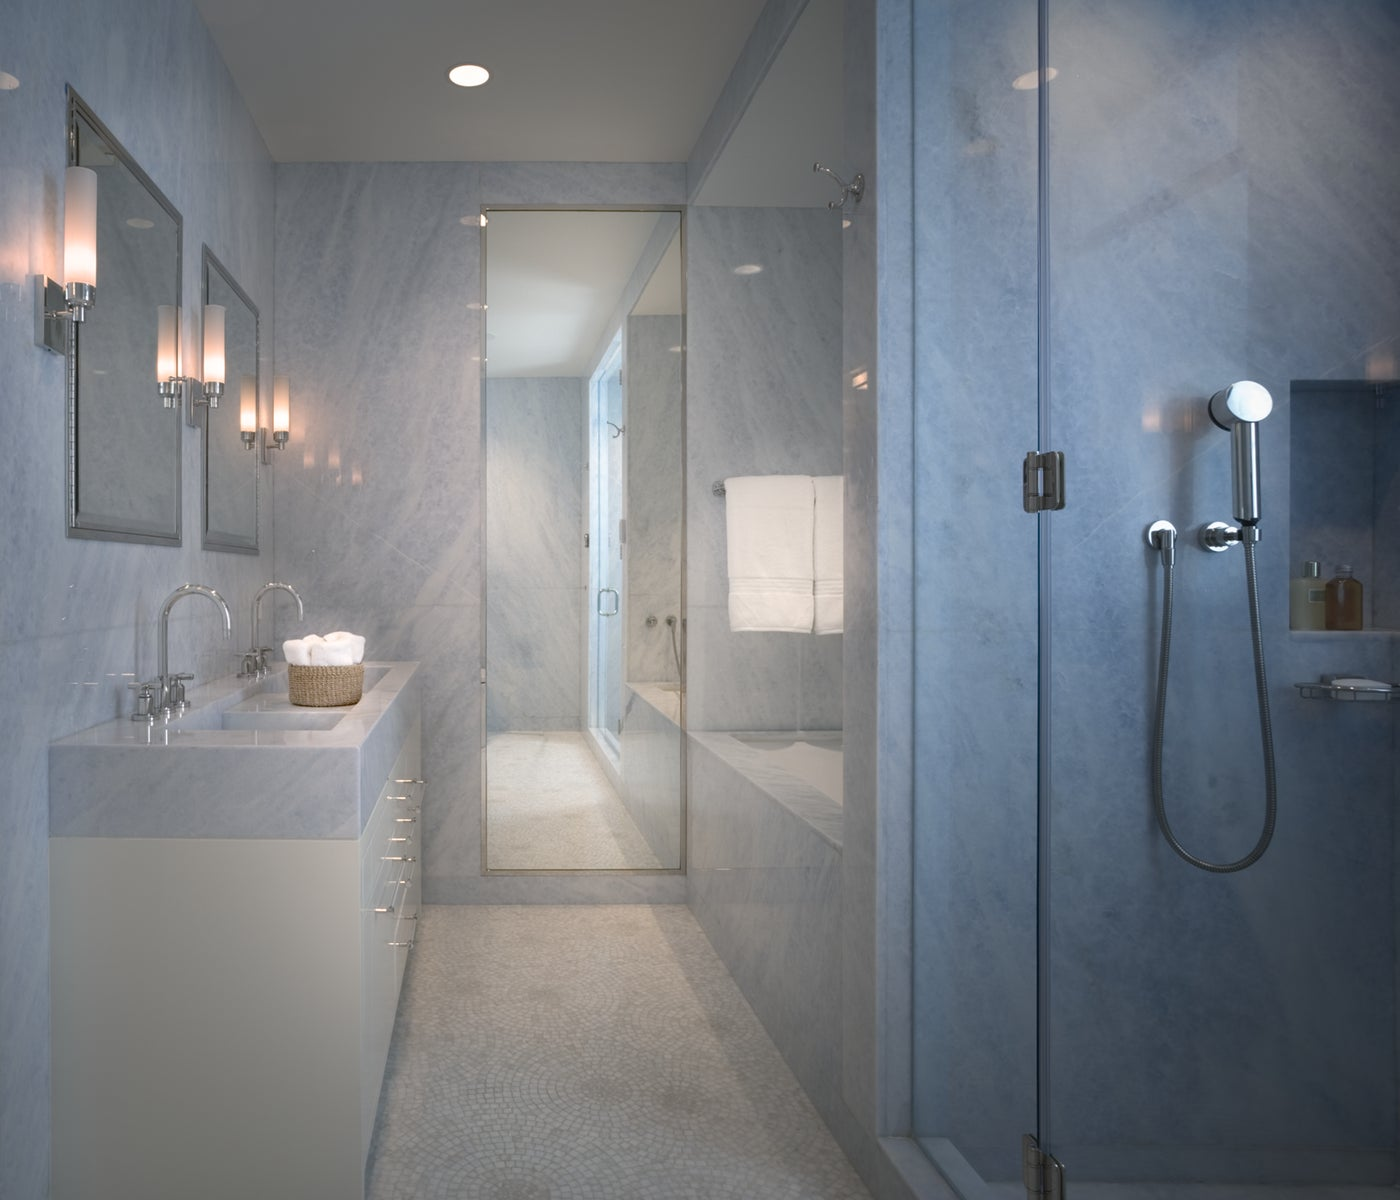 Marble master bathroom in NYC apartment, double sinks, full length mirror